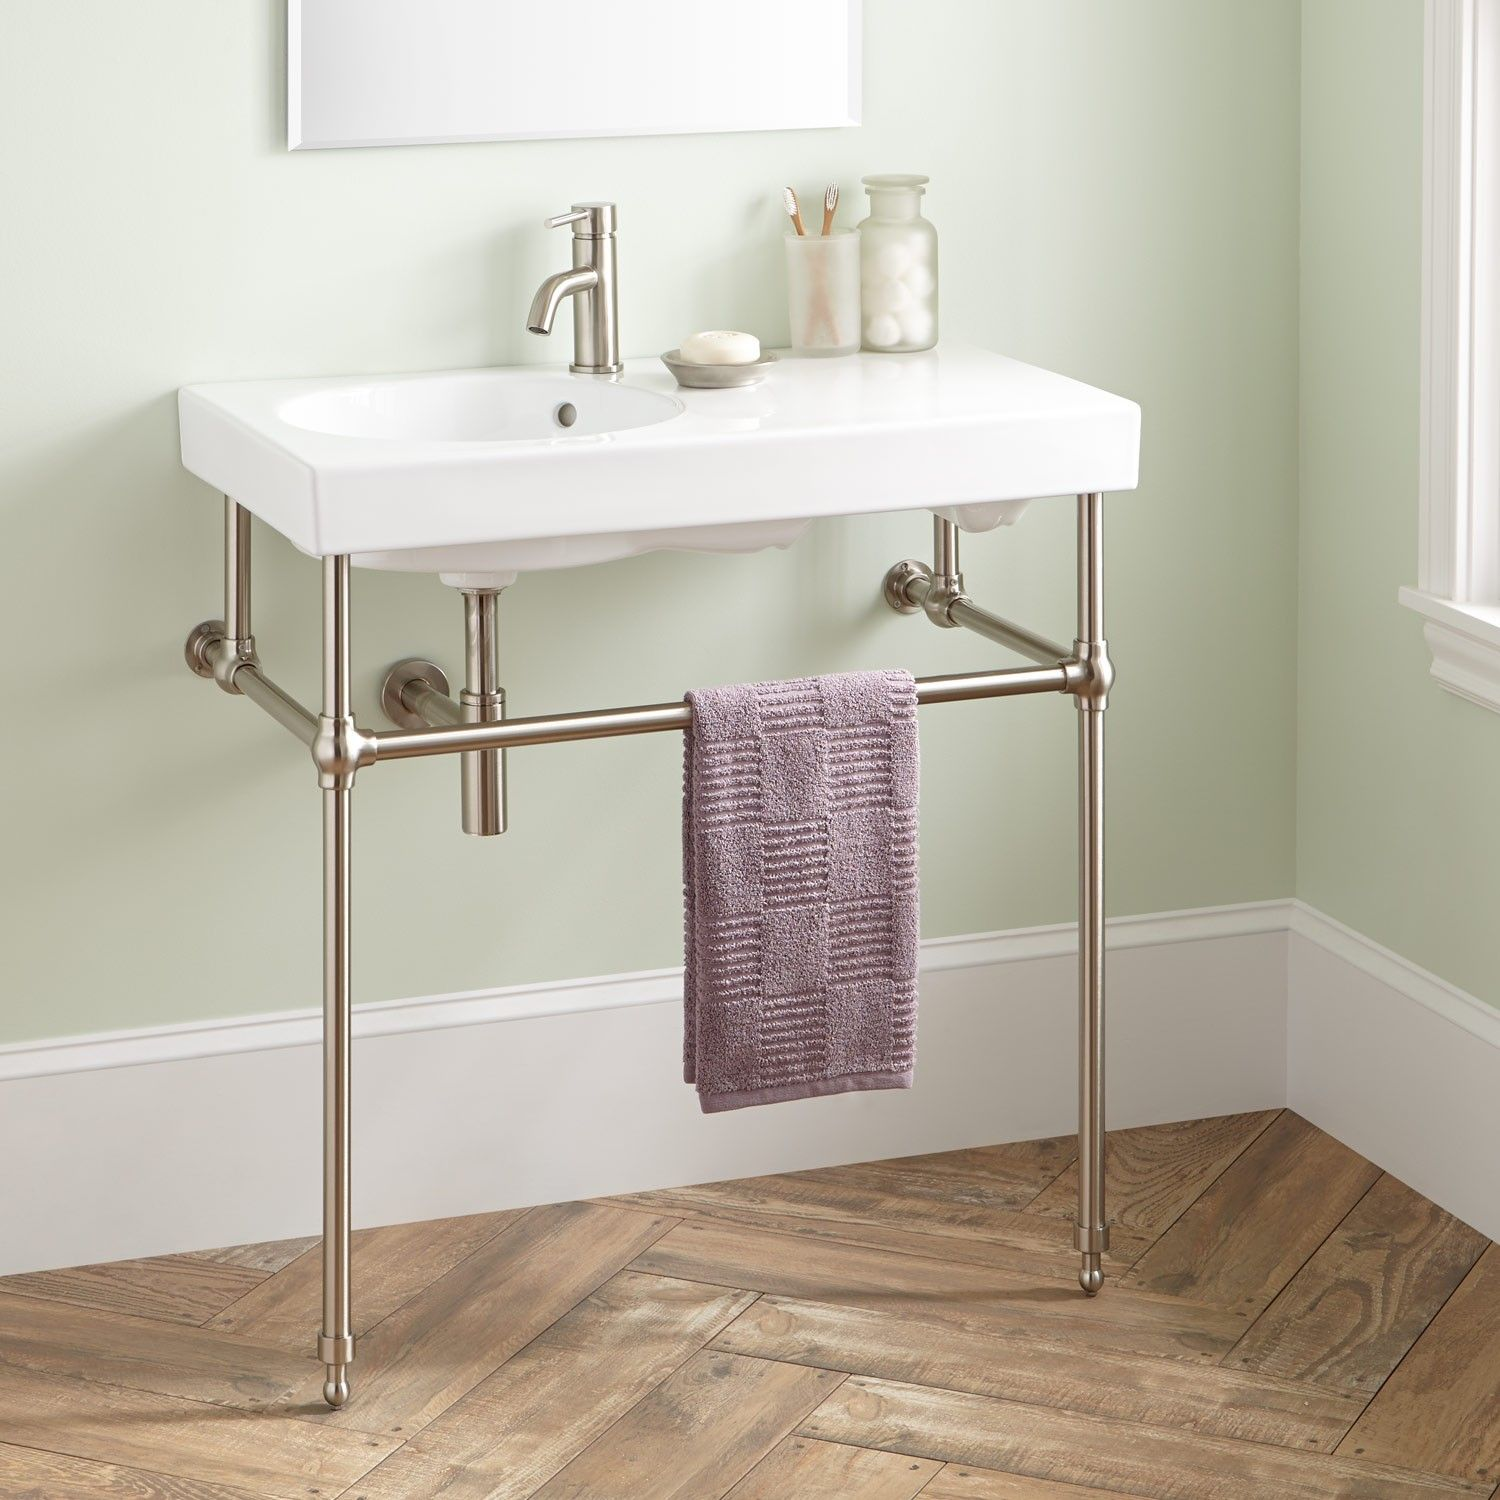 Ostrya Porcelain Console Sink with Brass Stand